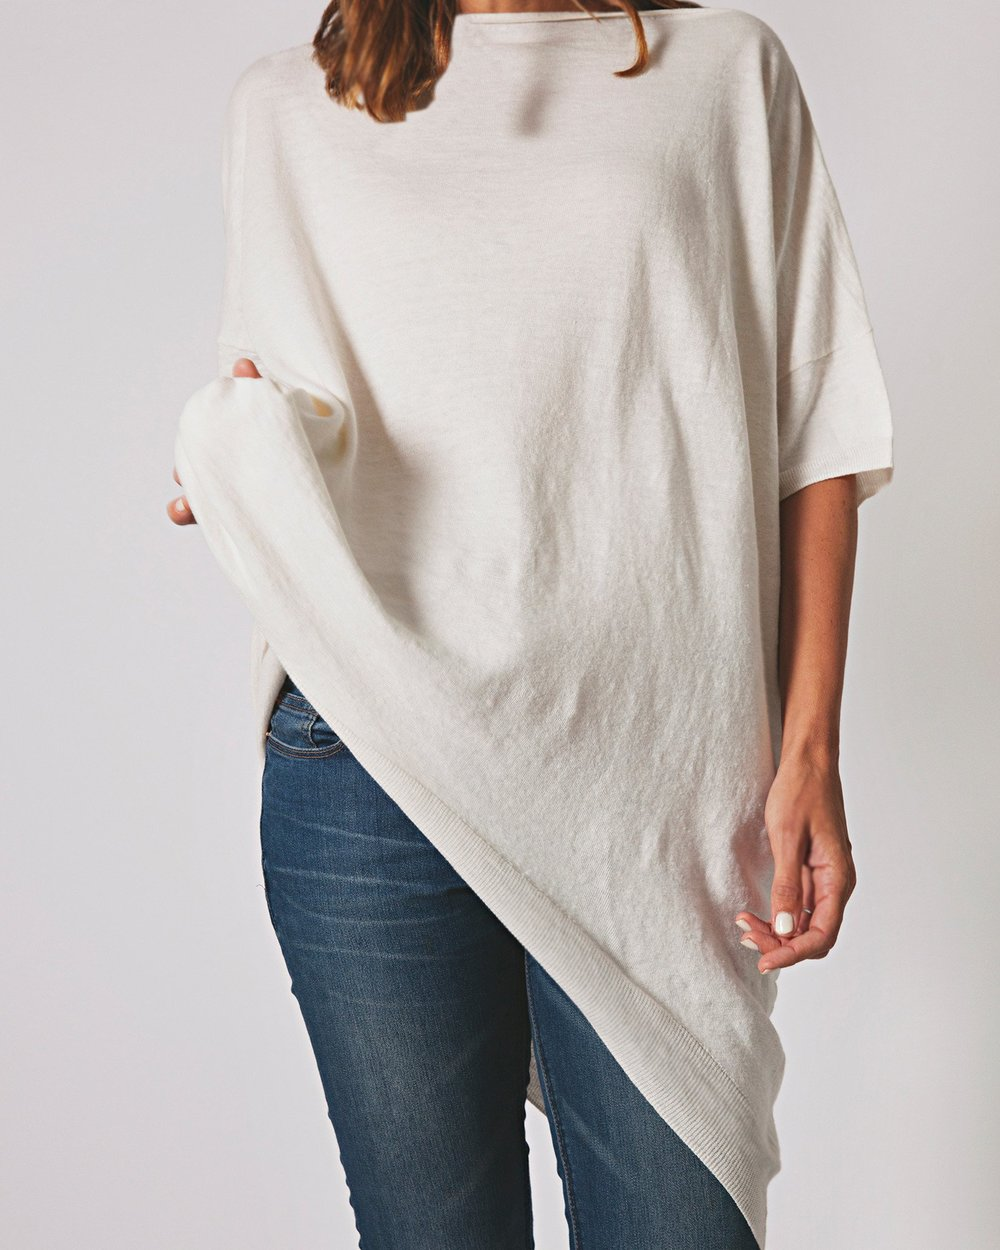 French Linen Oversized Tee   {$160}